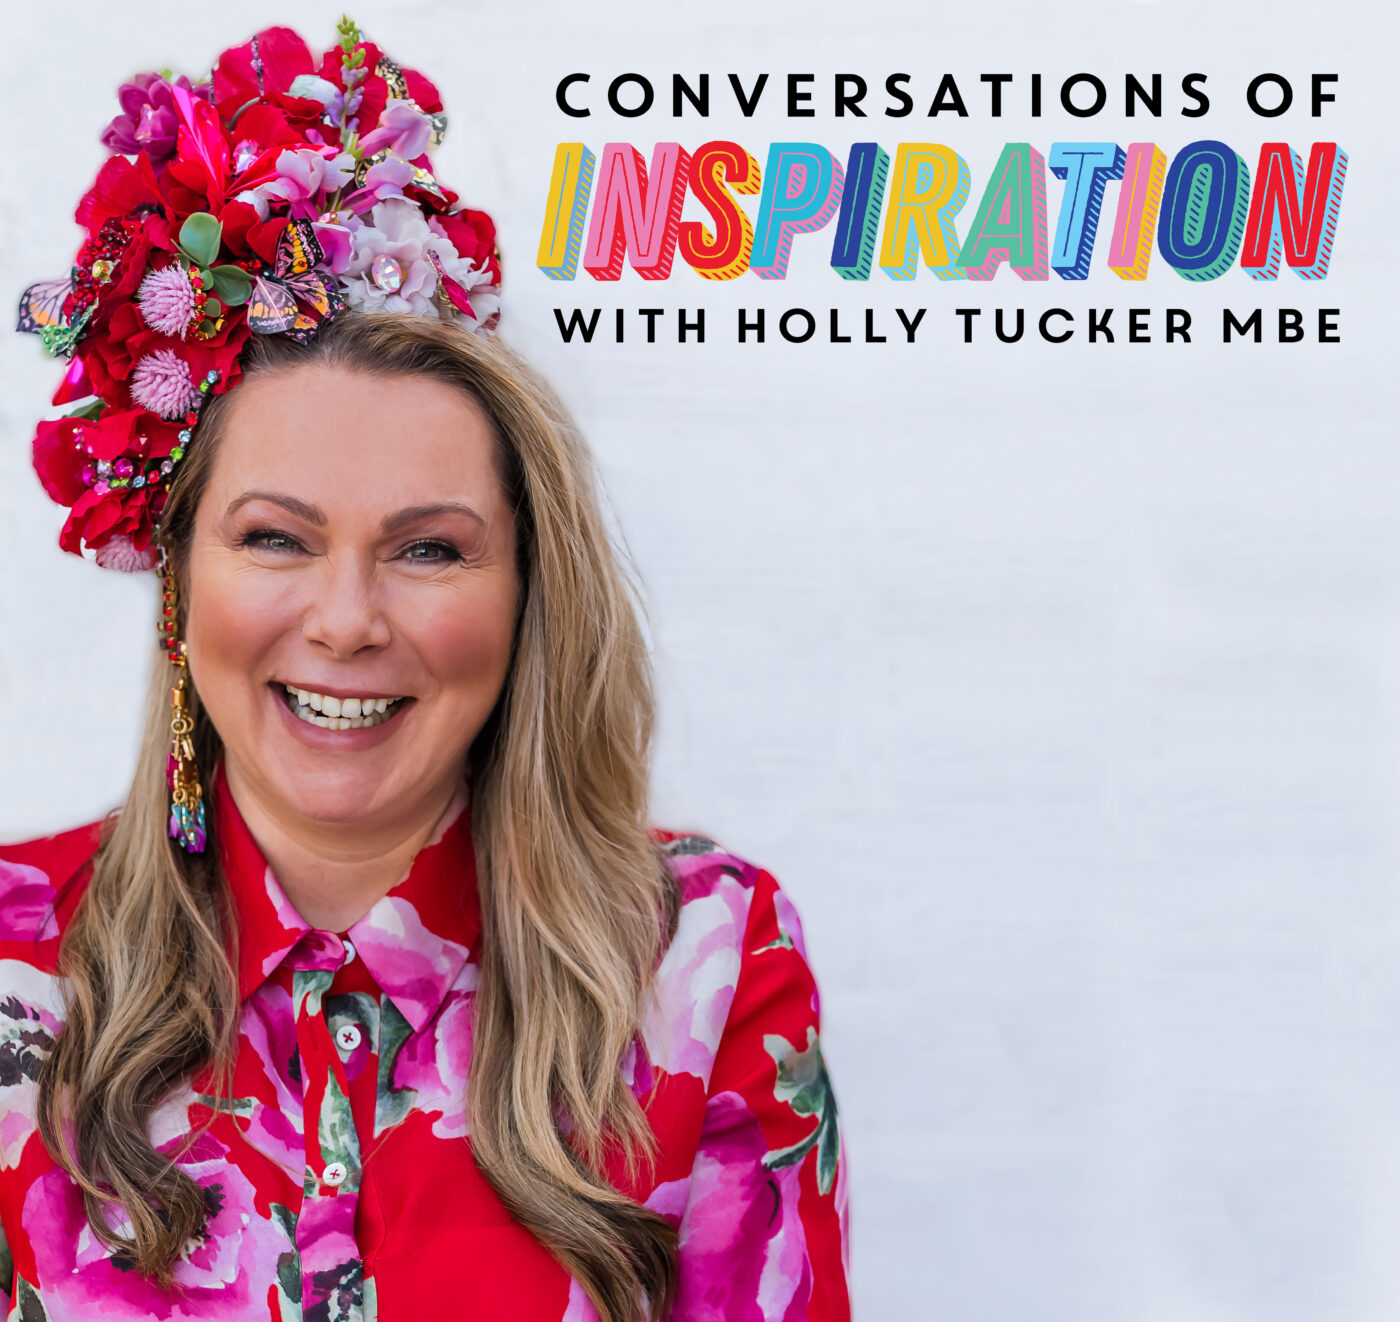 Conversations of Inspiration with Holly Tucker MBE logo